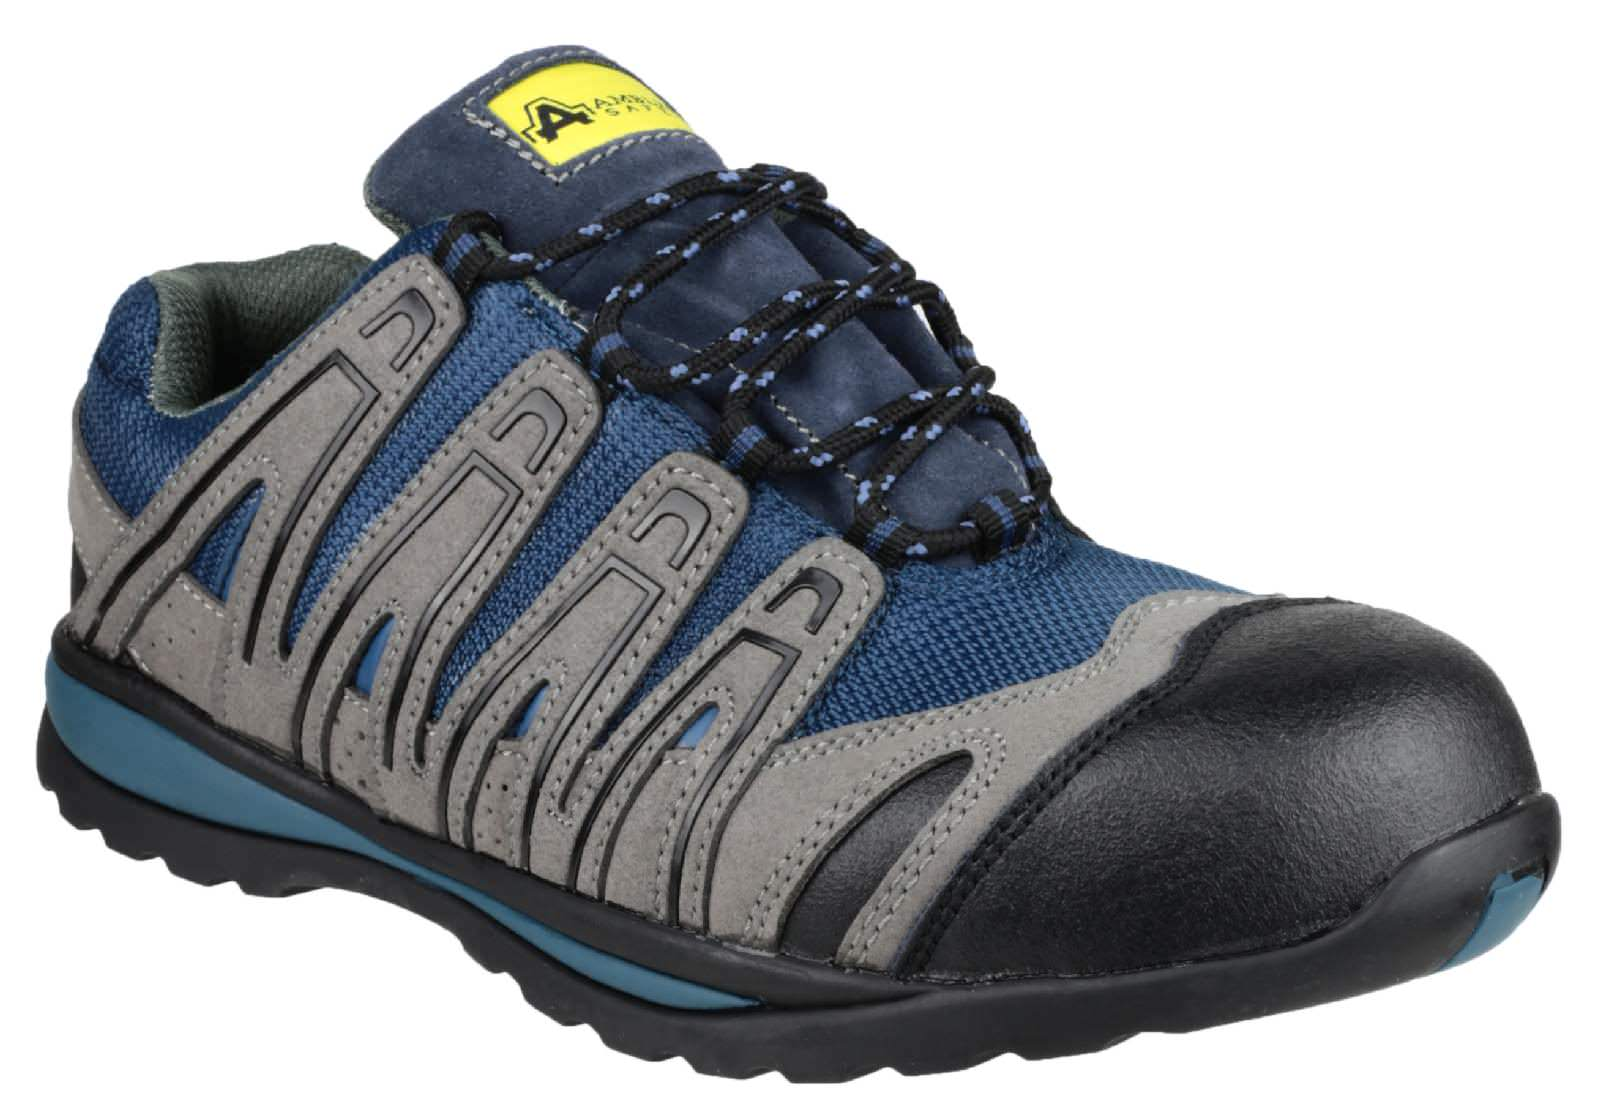 Amblers FS34c Composite Safety Trainer